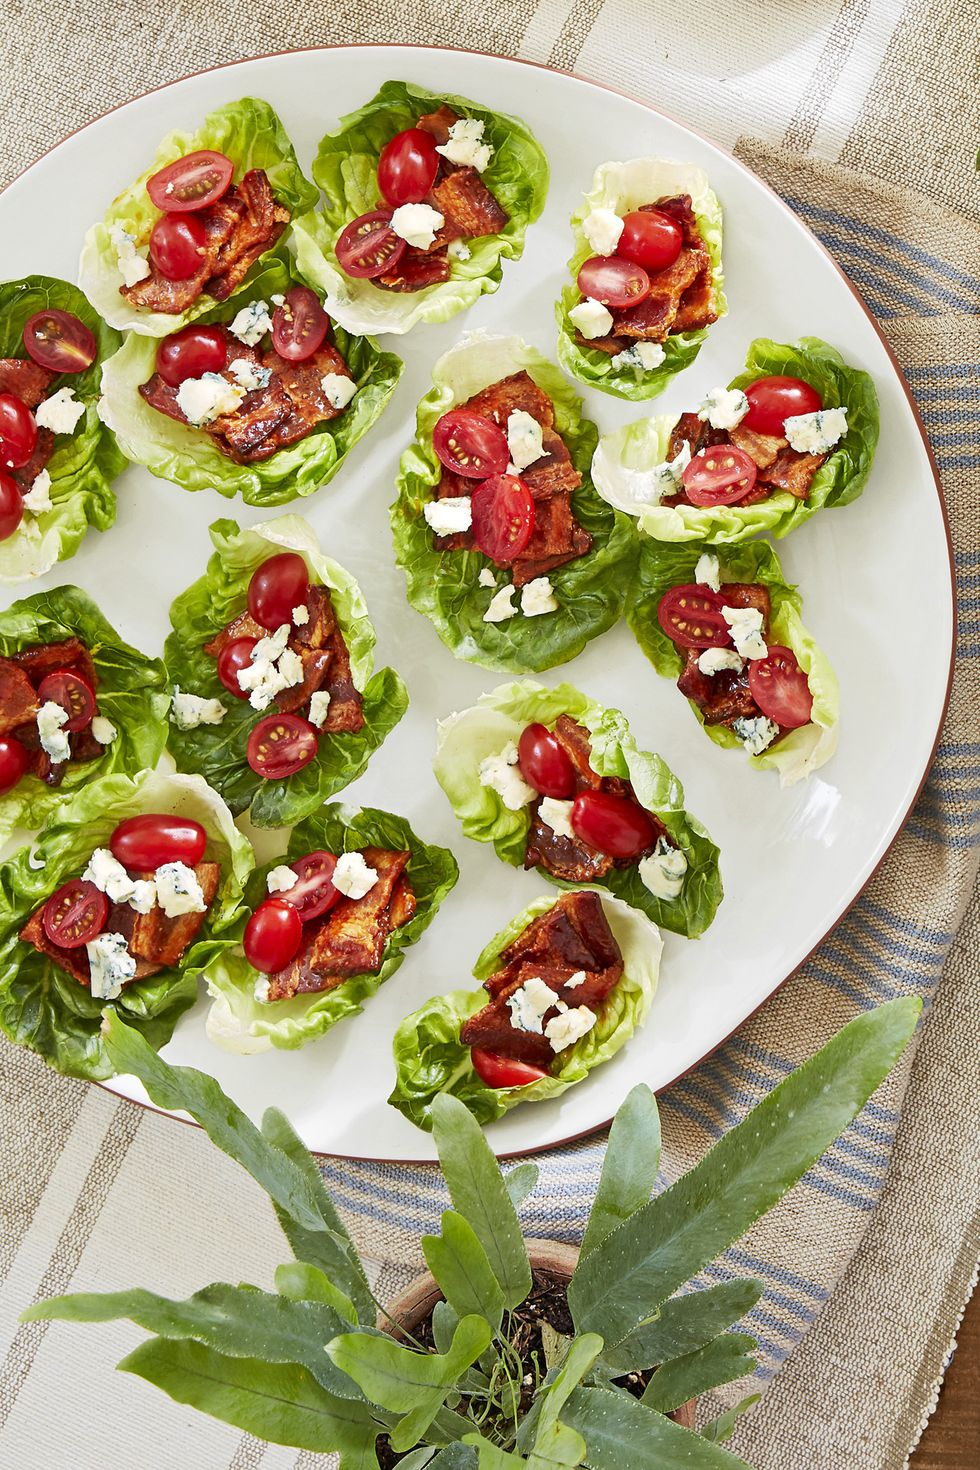 Bacon Lettuce Cups | Recipe in 2020 | Picnic foods, New ...